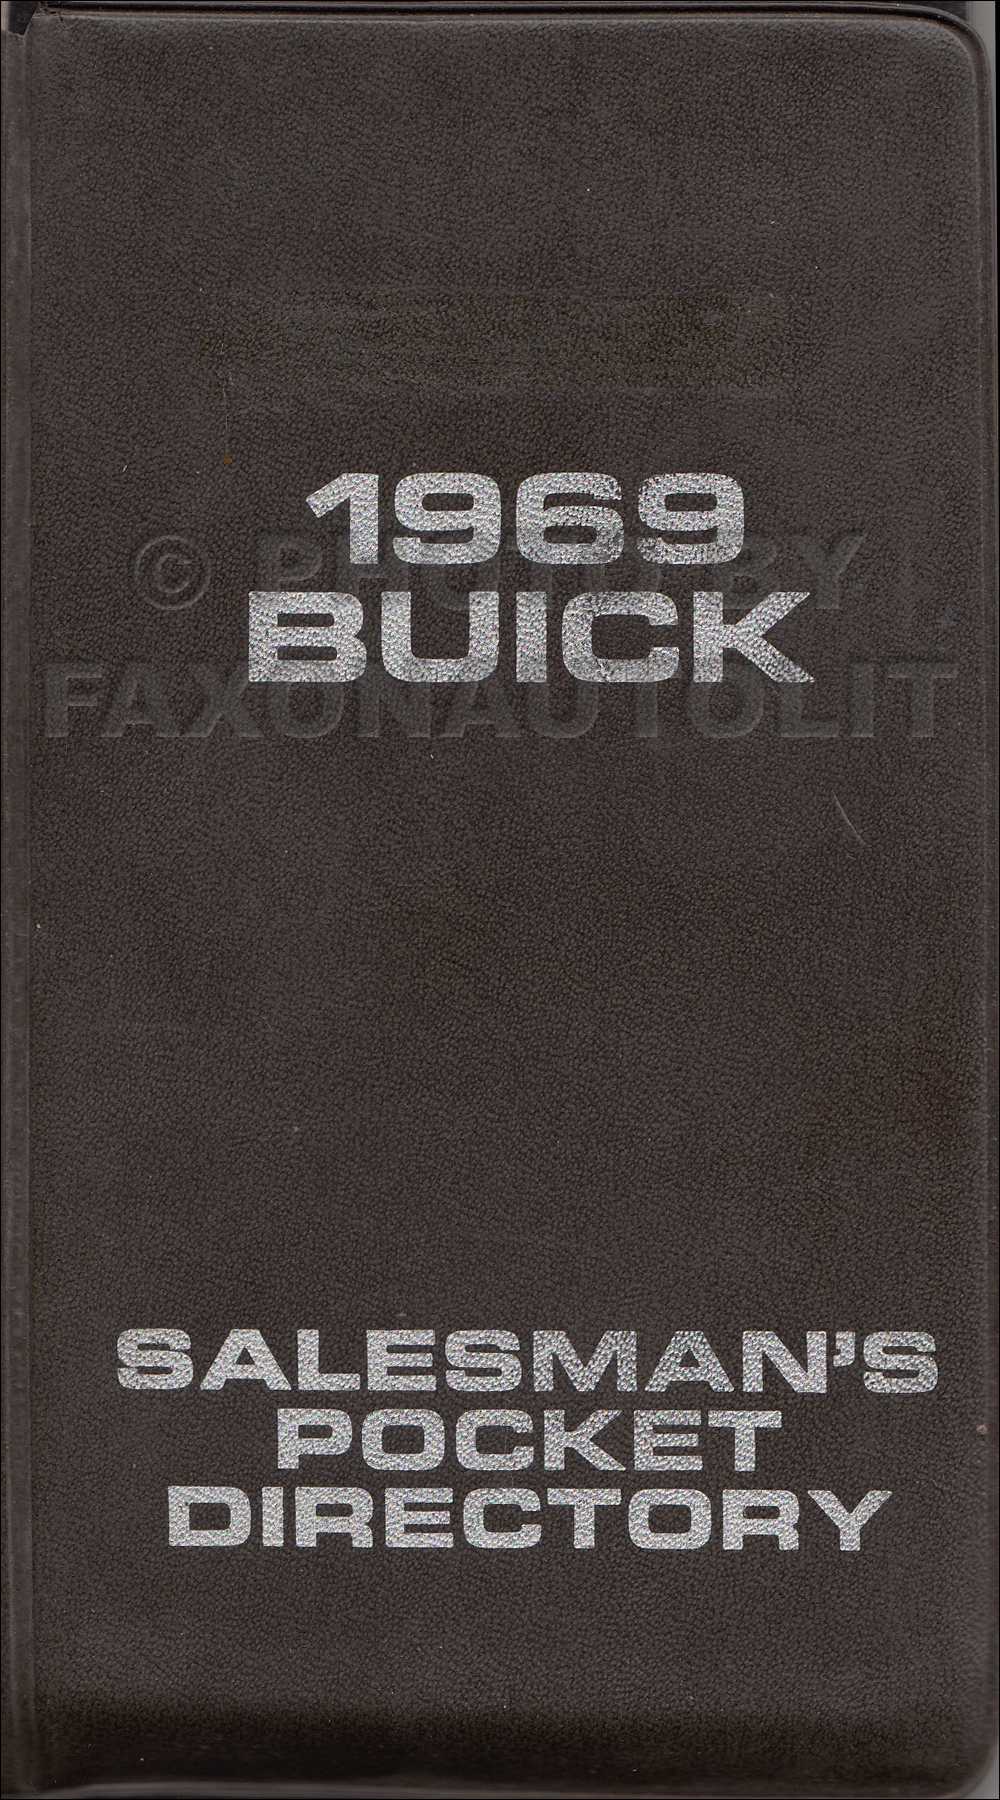 1969 Buick Salesman's Pocket Directory Original